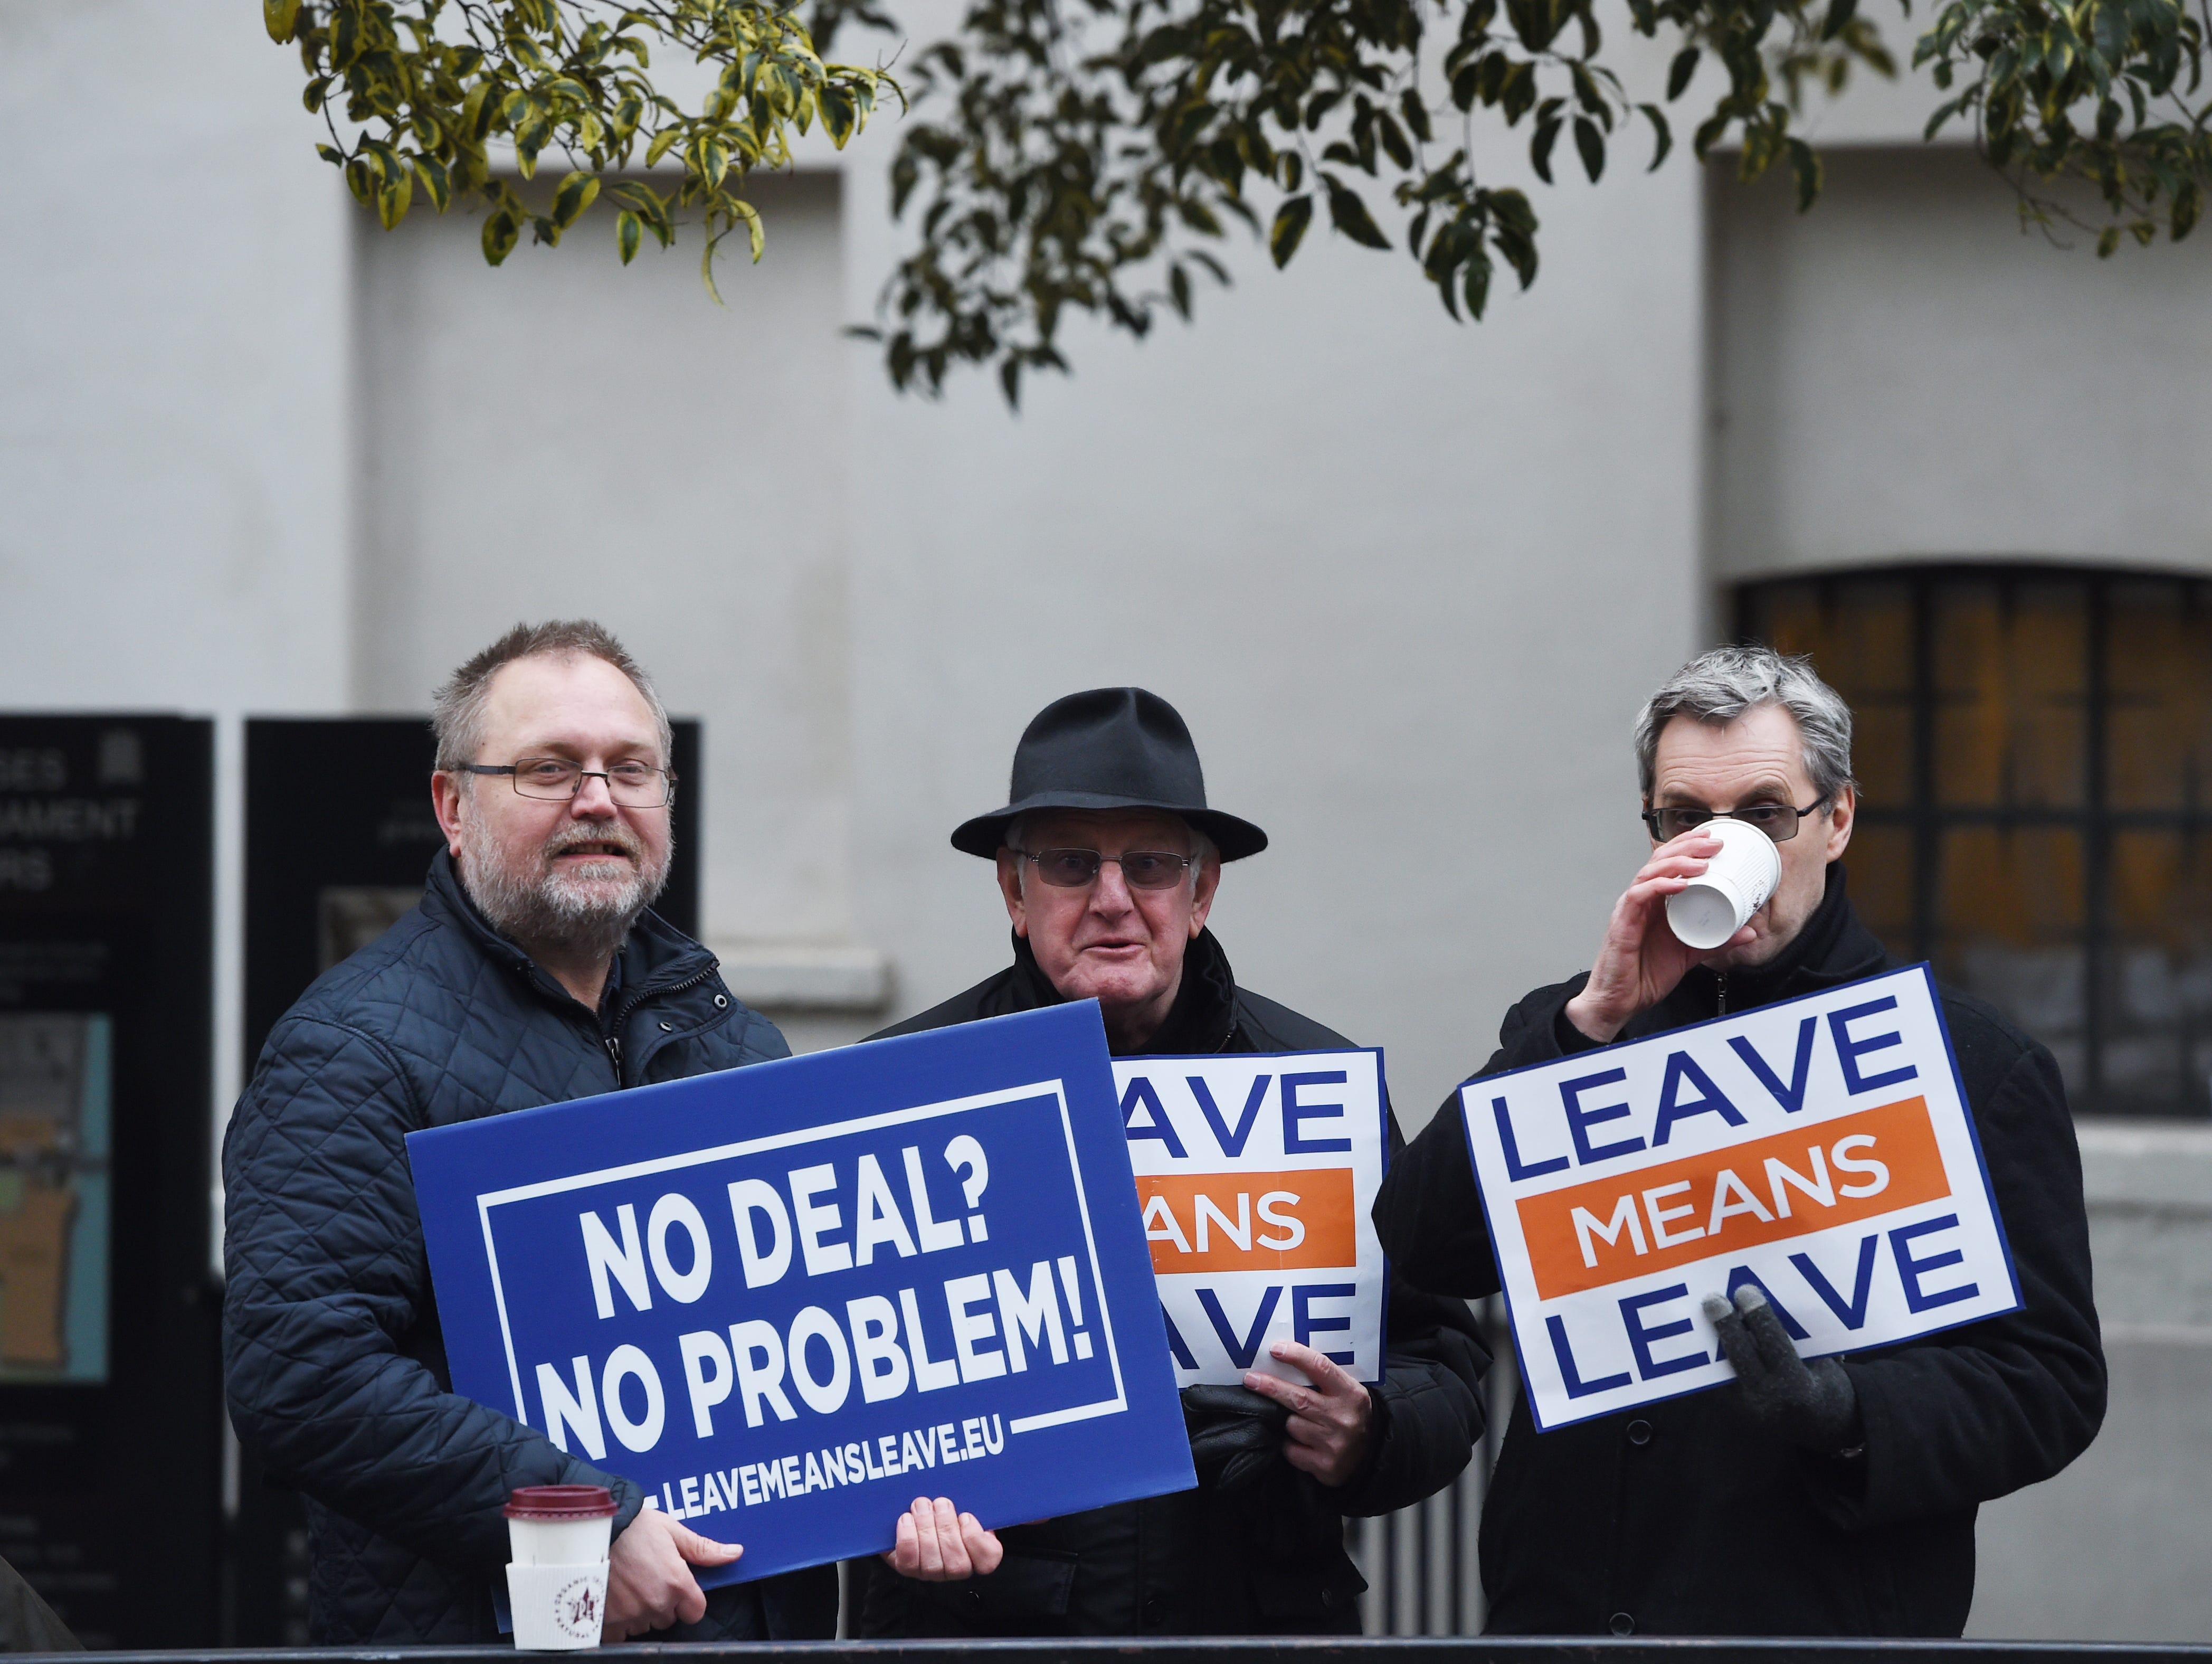 Pro Brexit supporters display signs outside the Houses of Parliament in Westminster in London, Britain on Jan. 10, 2019.